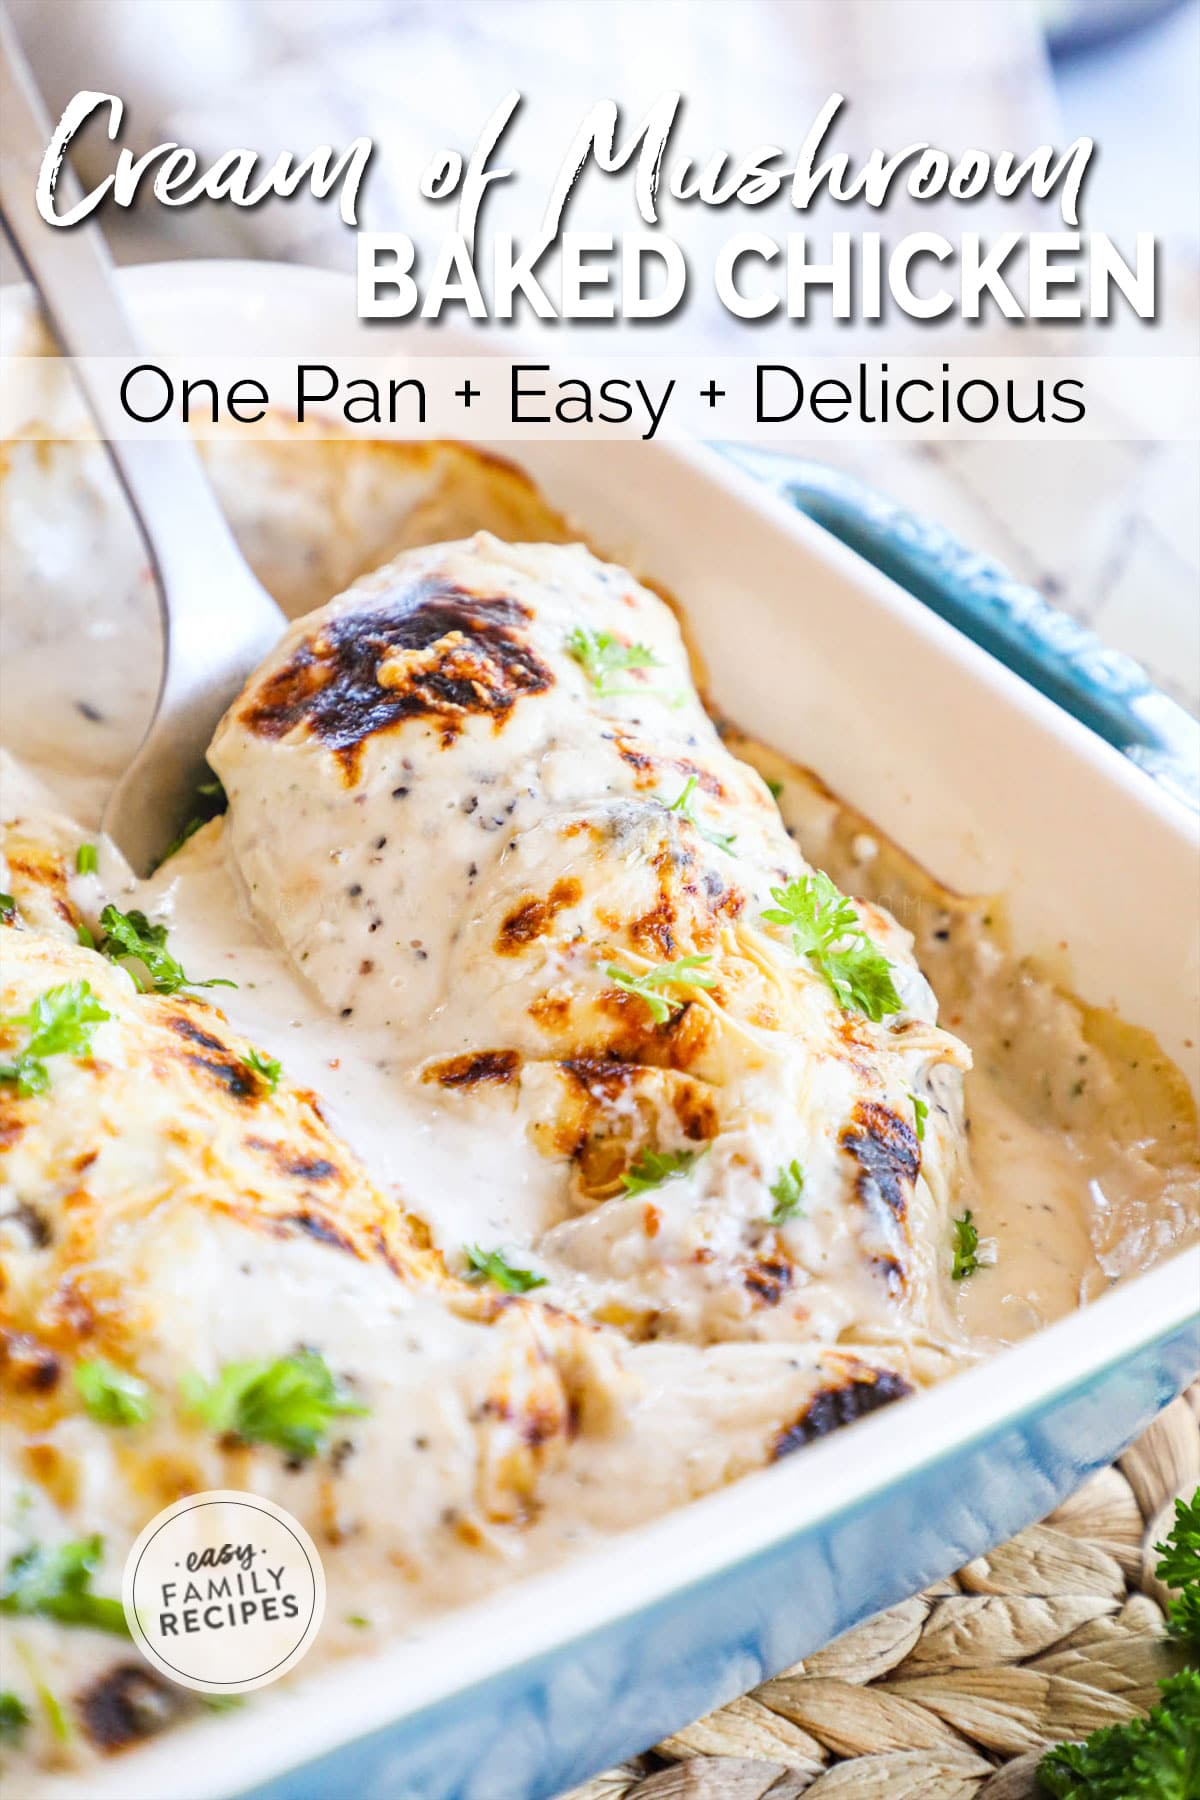 Lifting baked chicken breast smothered in cream of mushroom soup to serve